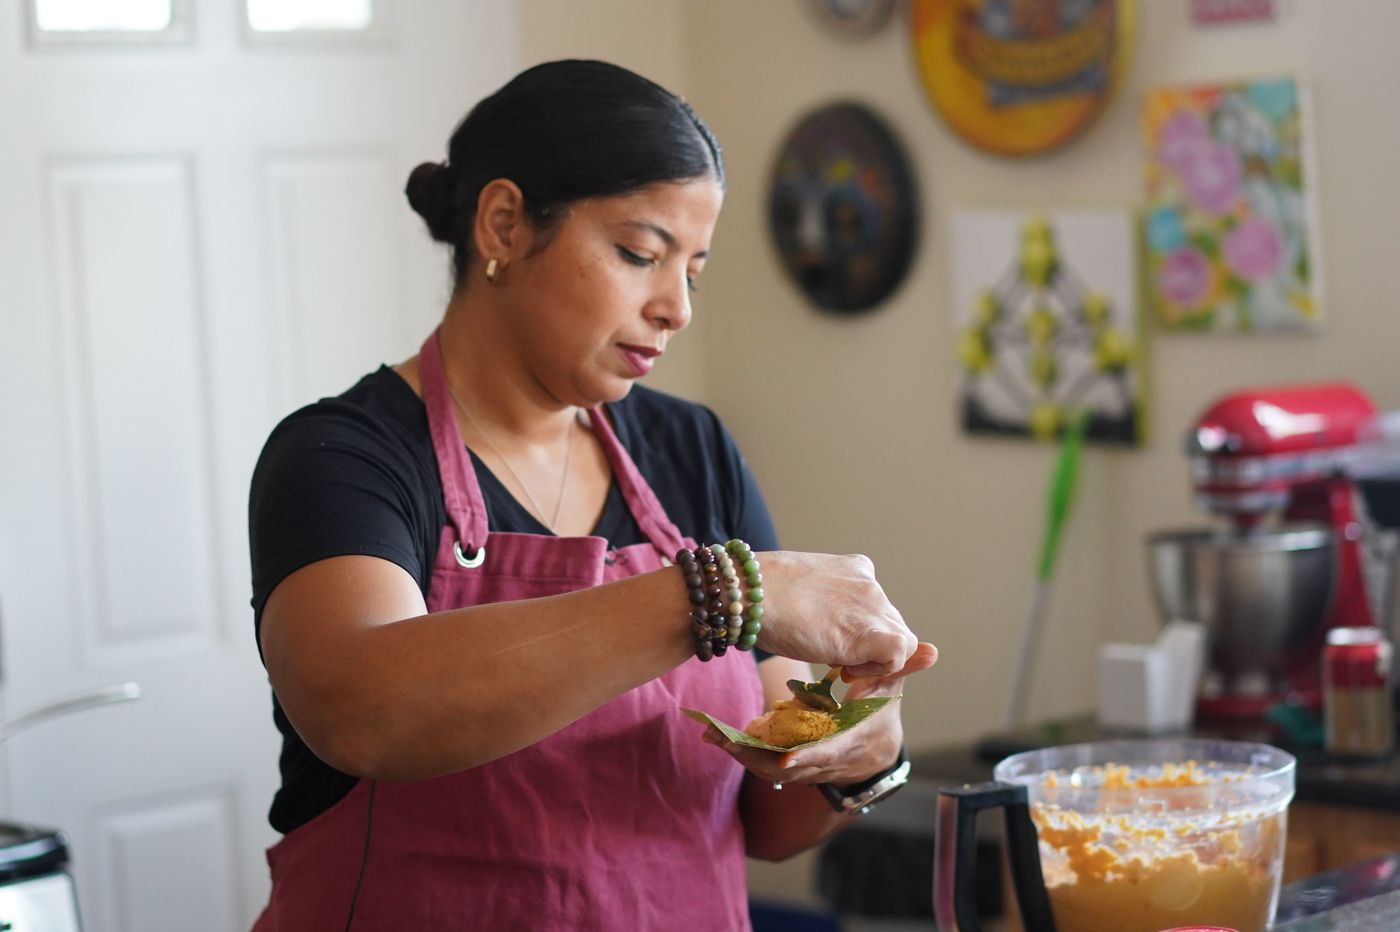 After a call to boycott Goya, Philly Latino home cooks lean into traditional recipes